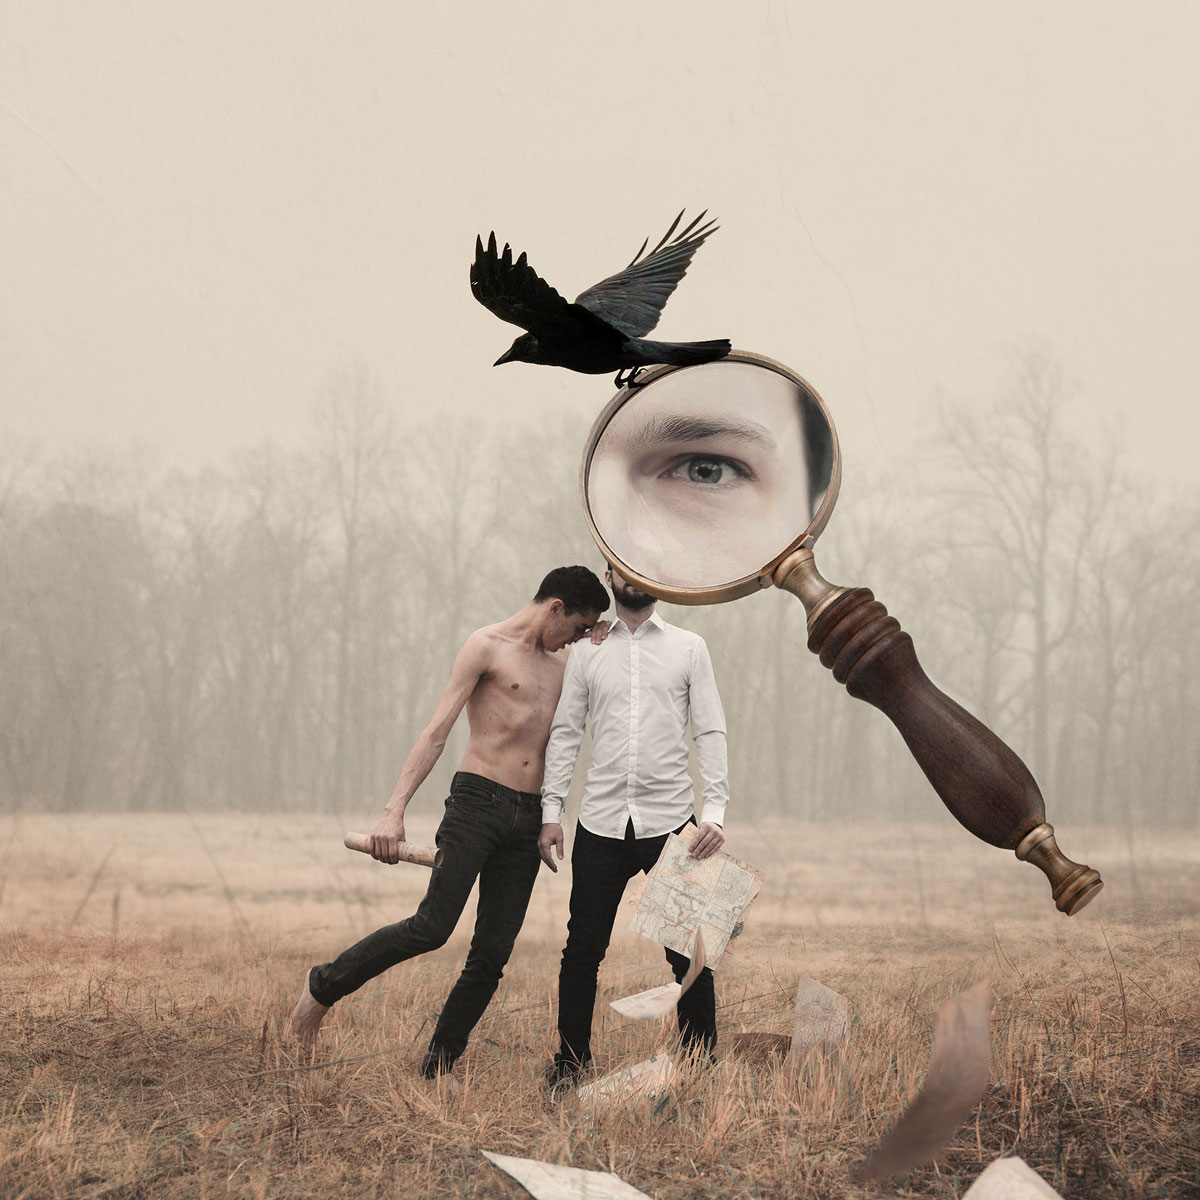 Jonathan Chapé photography digital art image of men in field with magnifying glass over eye